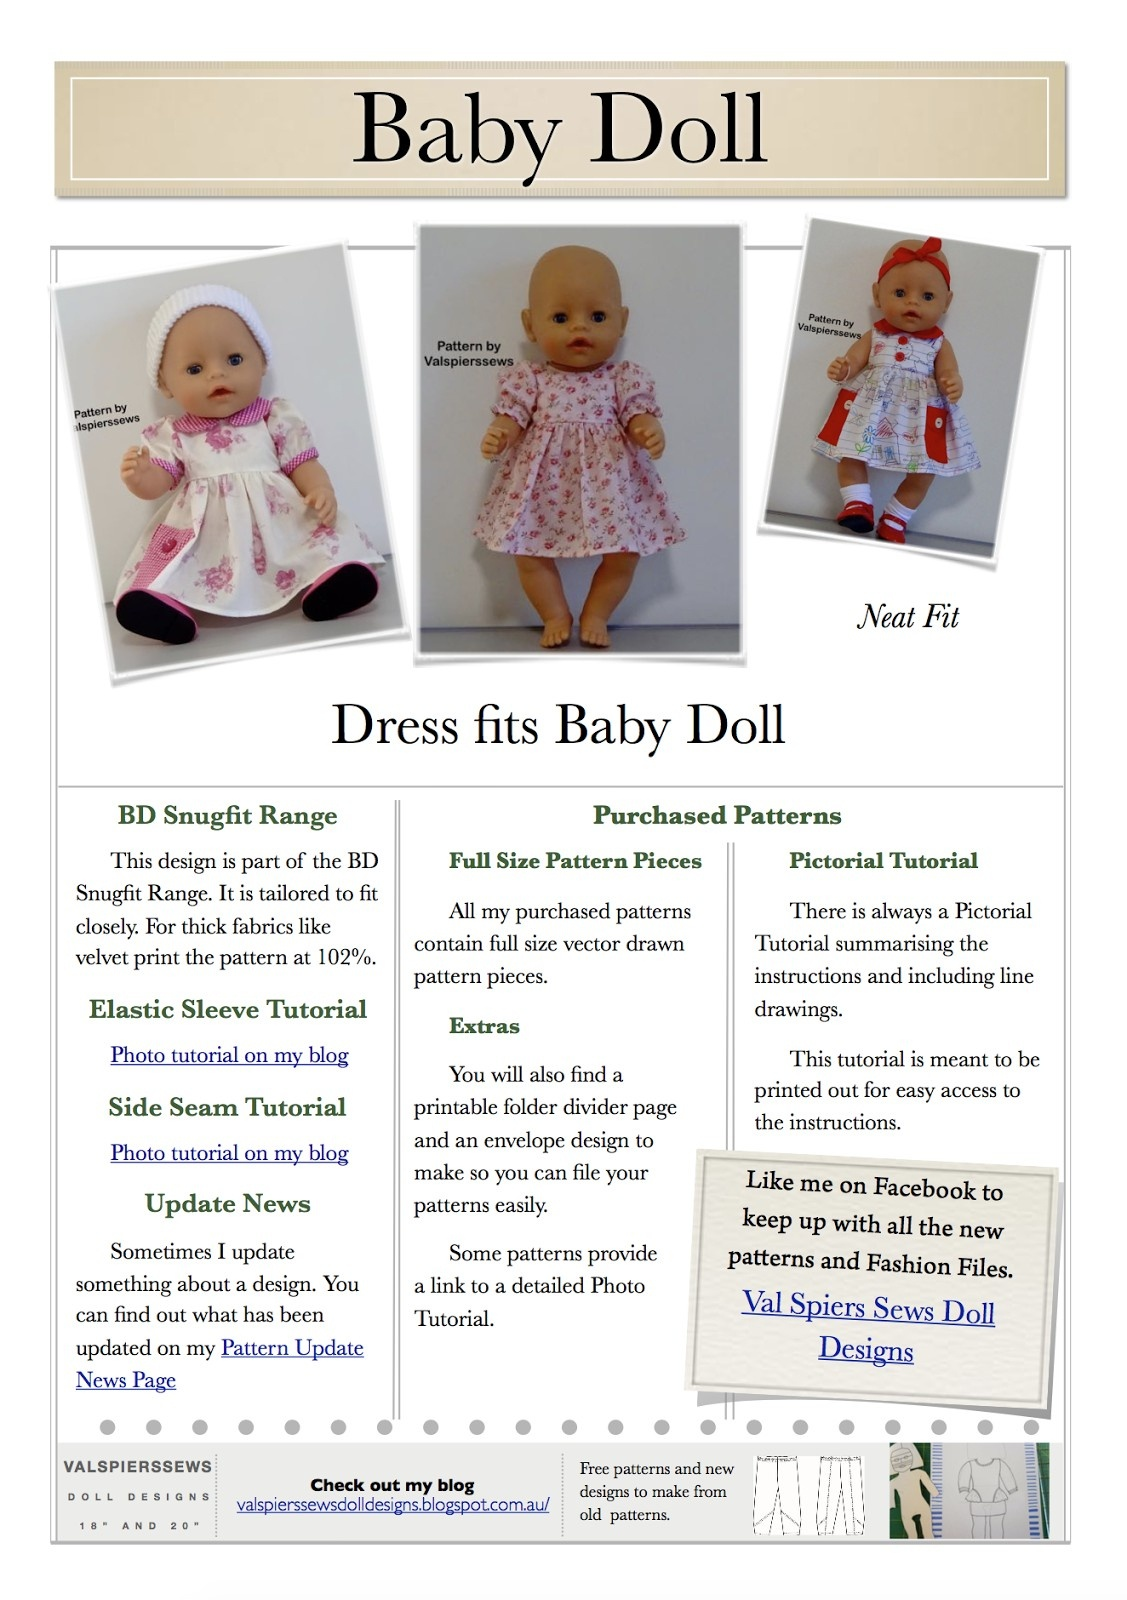 Free Printable American Girl Doll Clothes Patterns Lovely Doll - American Girl Doll Clothes Patterns Free Printable